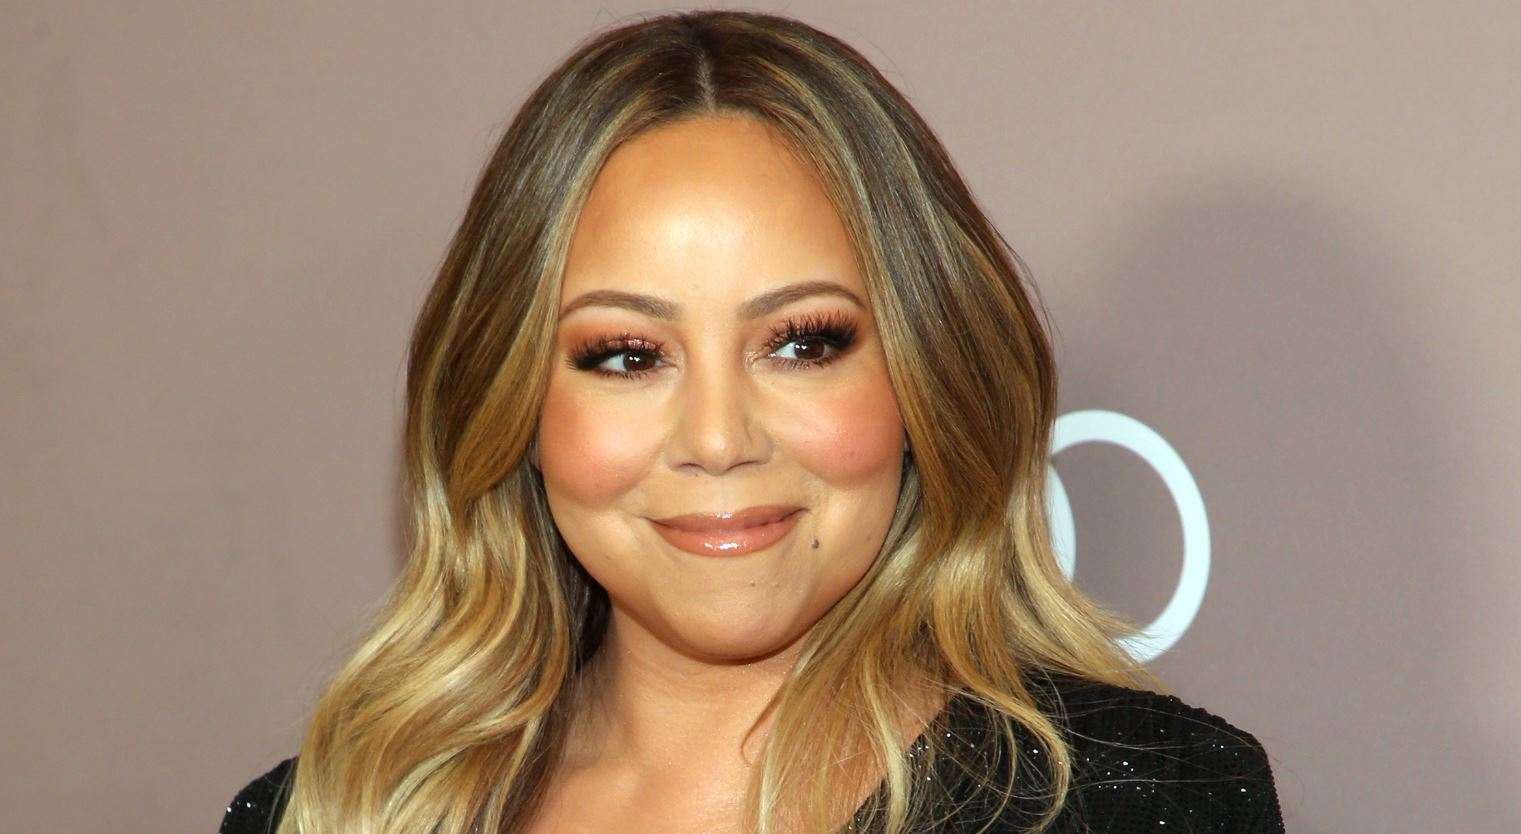 Mariah Carey's Twitter Got Hacked And Took Shots At Eminem ...